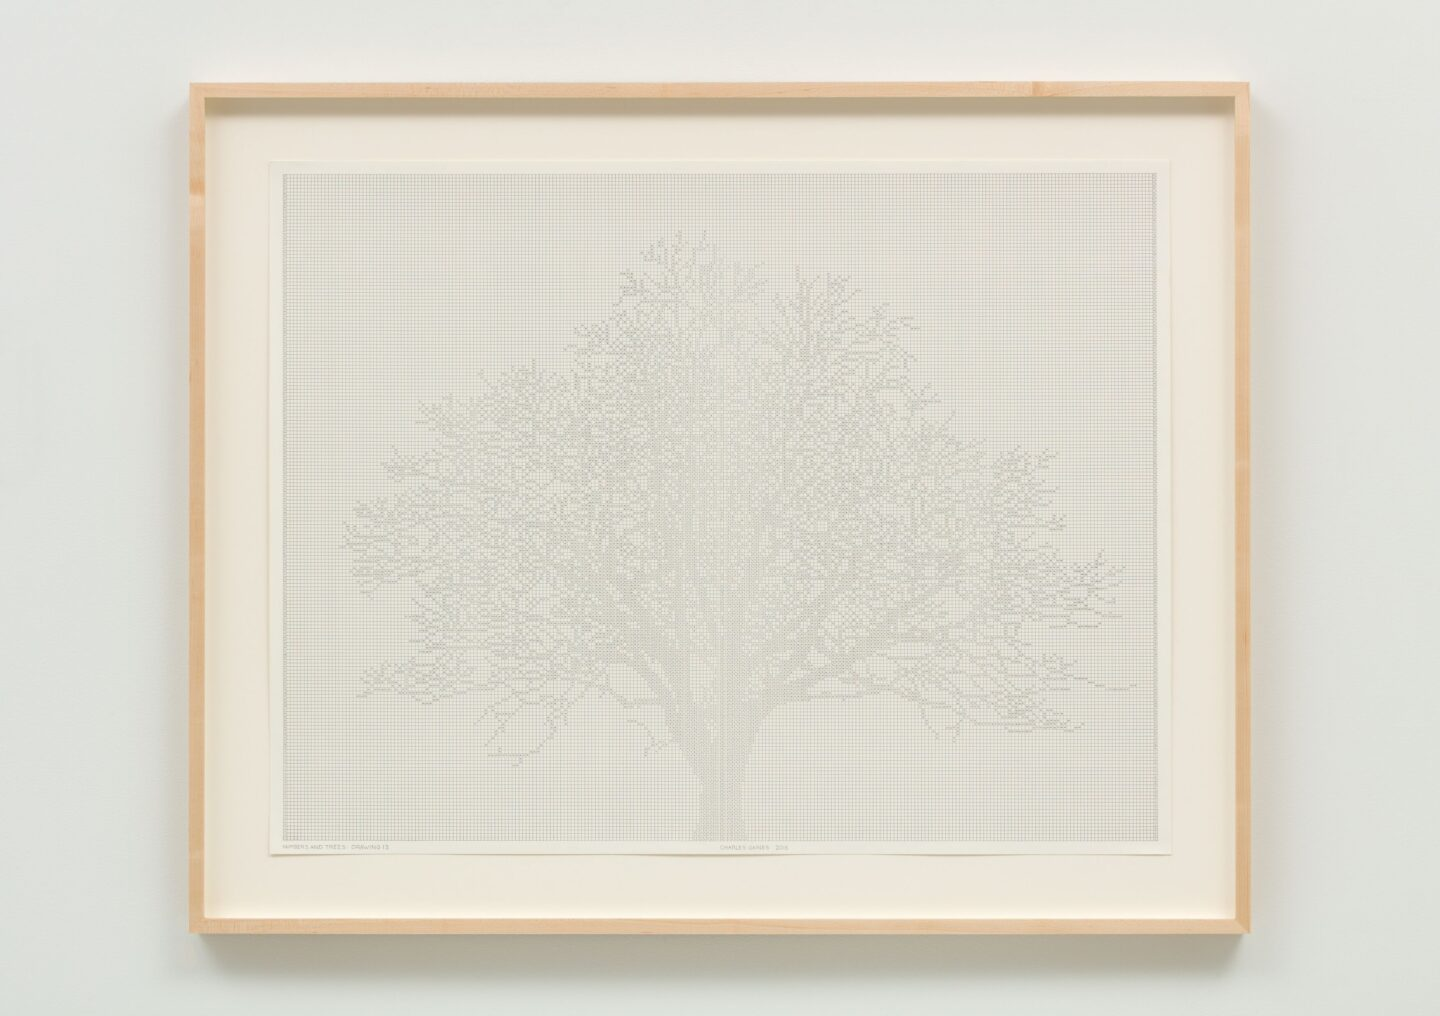 Exhibition View Charles Gaines Soloshow «Drawings; view on Numbers and Trees: Drawing 13, 2017» at Hauser & Wirth, St. Moritz, 2020 / Photo: Fredrik Nilsen / © Charles Gaines / Courtesy: the artist and Hauser & Wirth